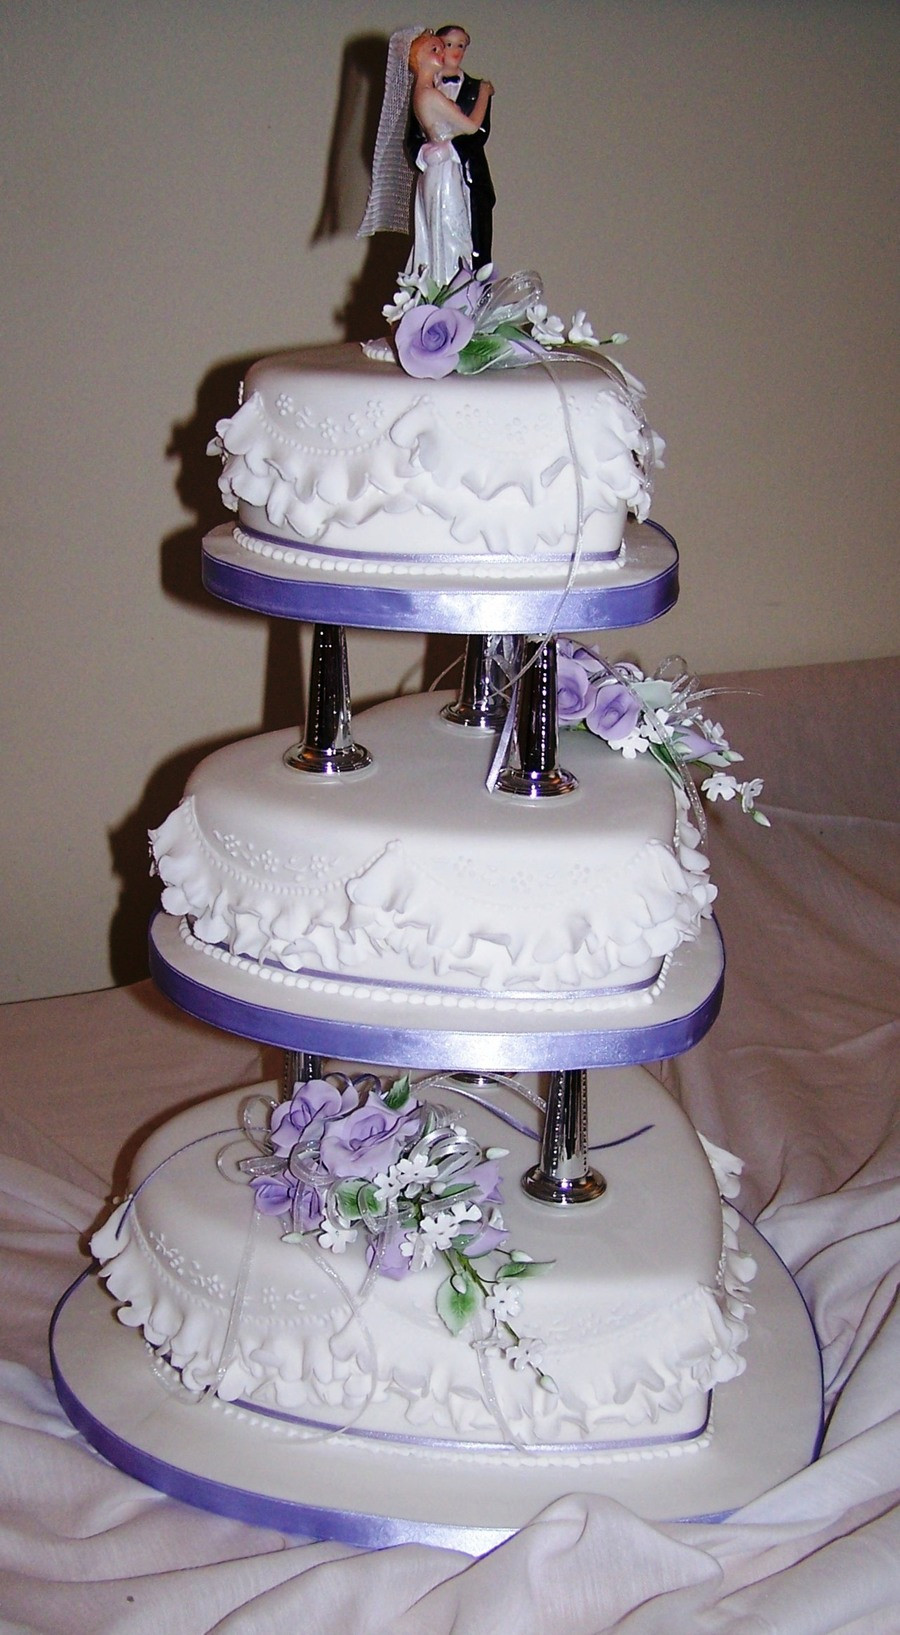 Wedding Cakes Tiered  3 Tier Heart Shaped Cake Pillars With Gumpaste Flowers